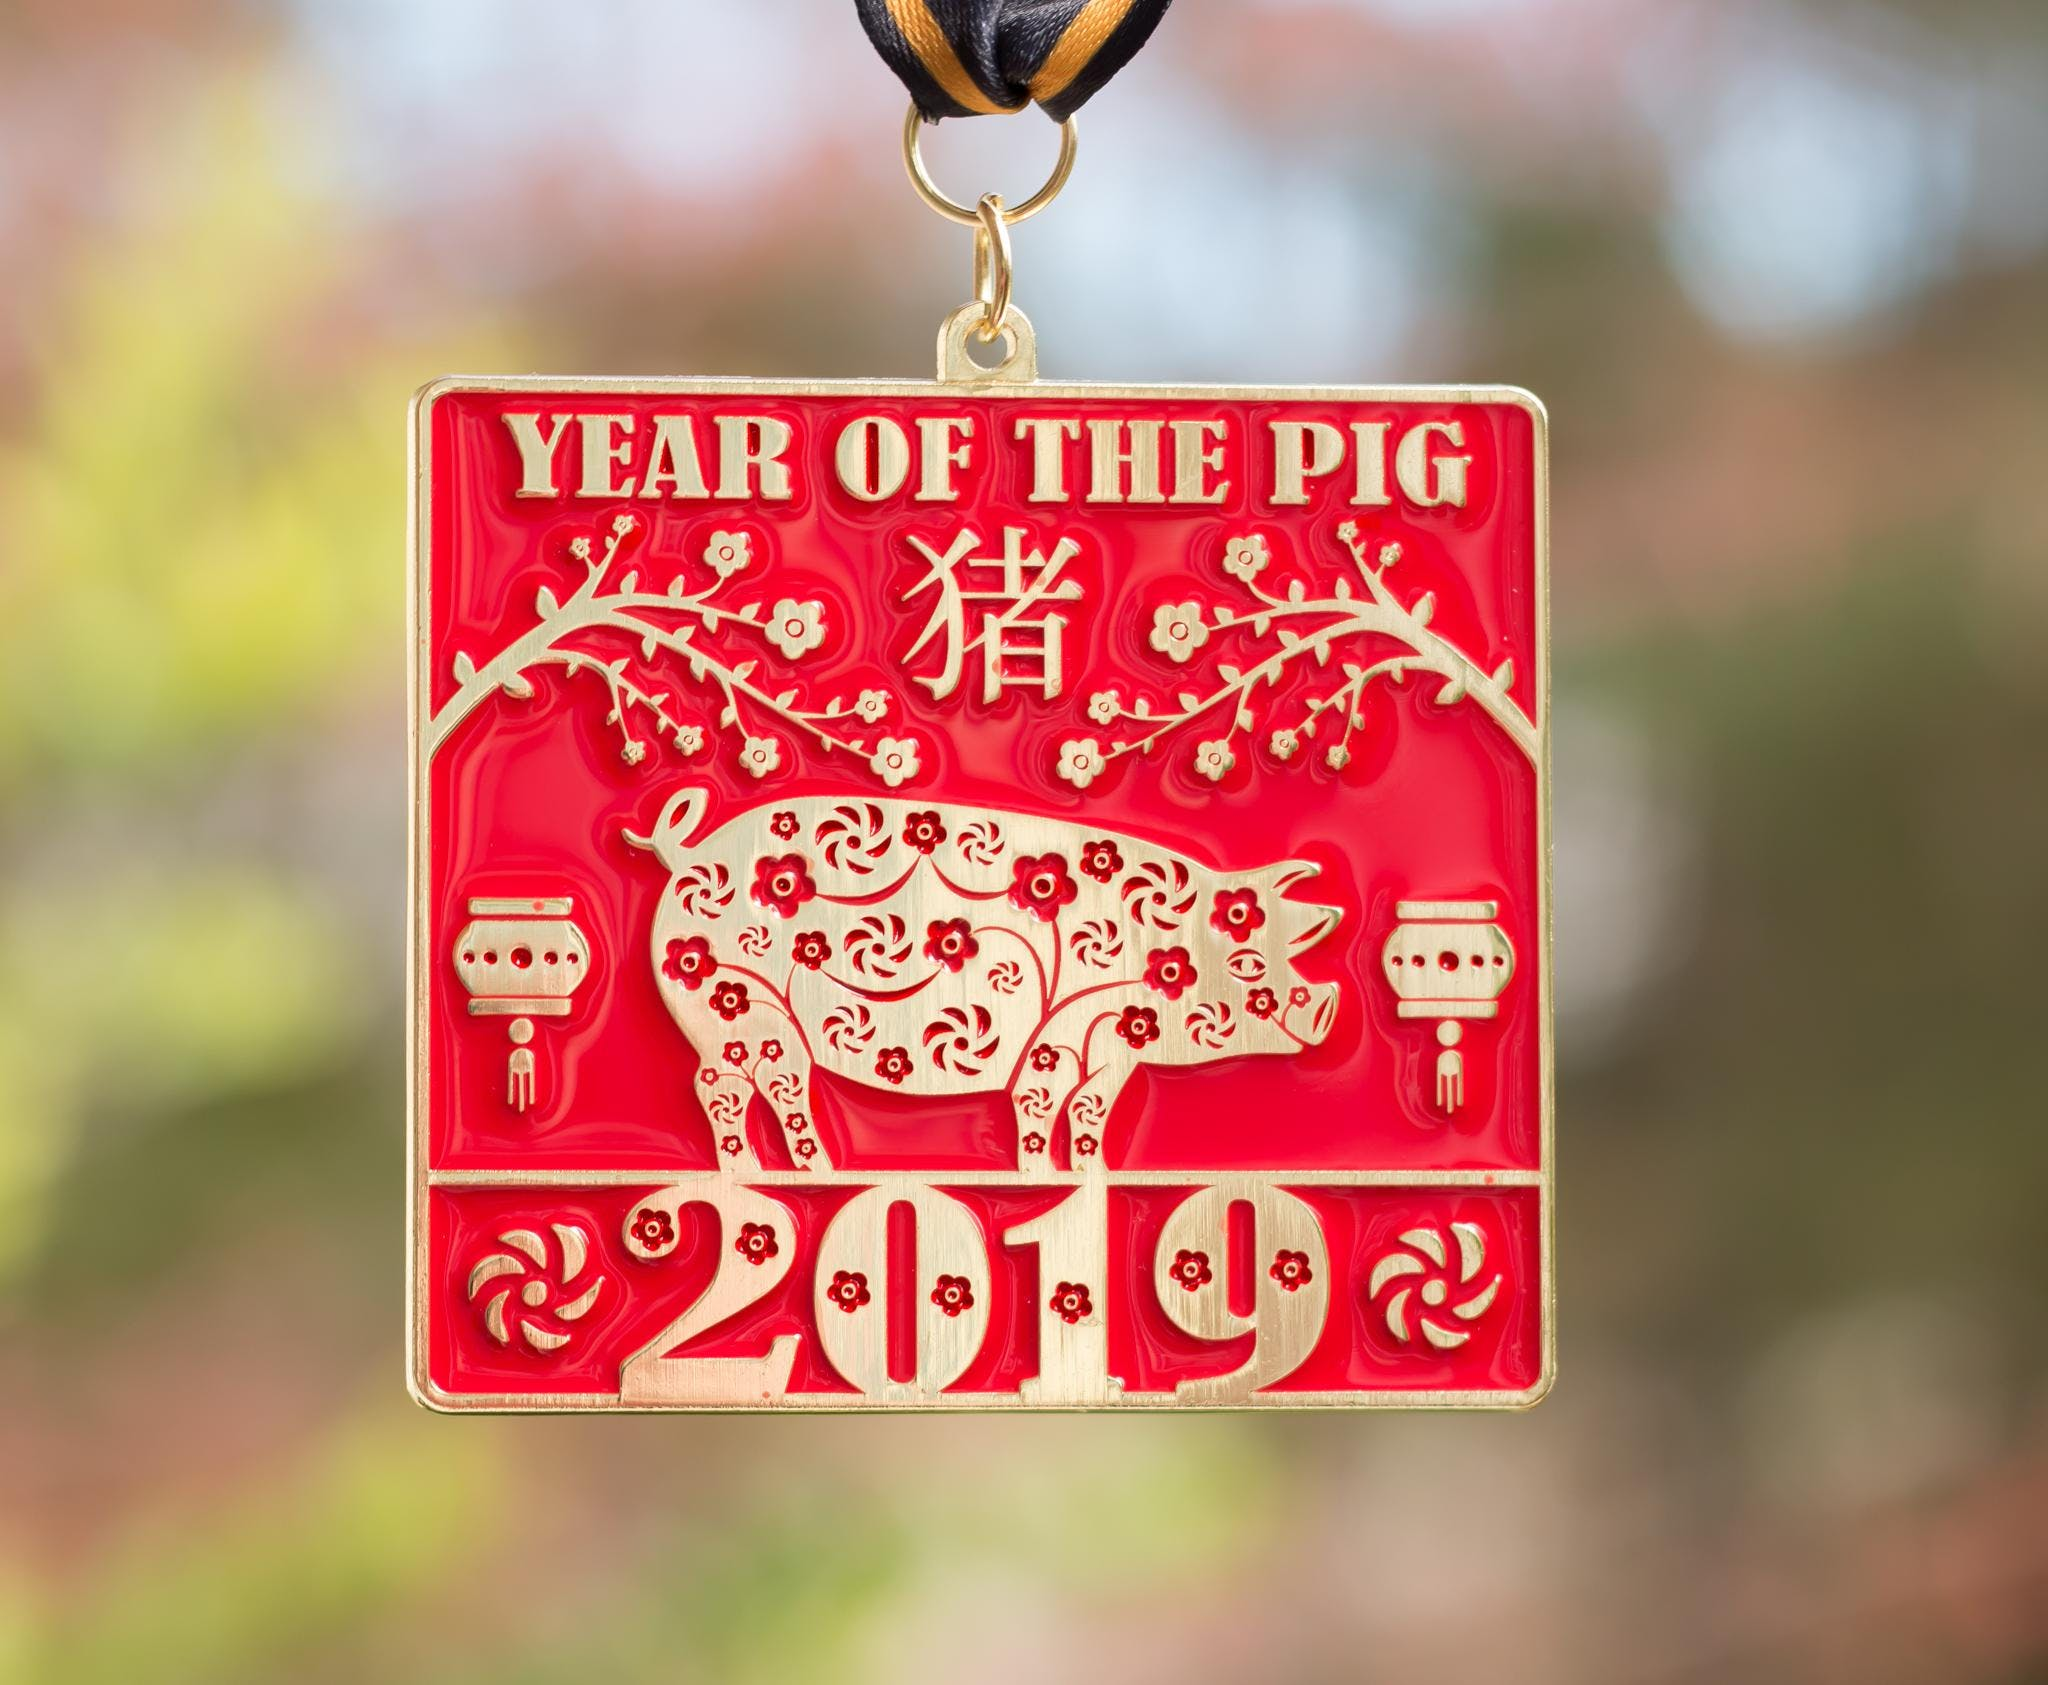 2019 The New Year Running/Walking Challenge-Year of the Pig -Tucson